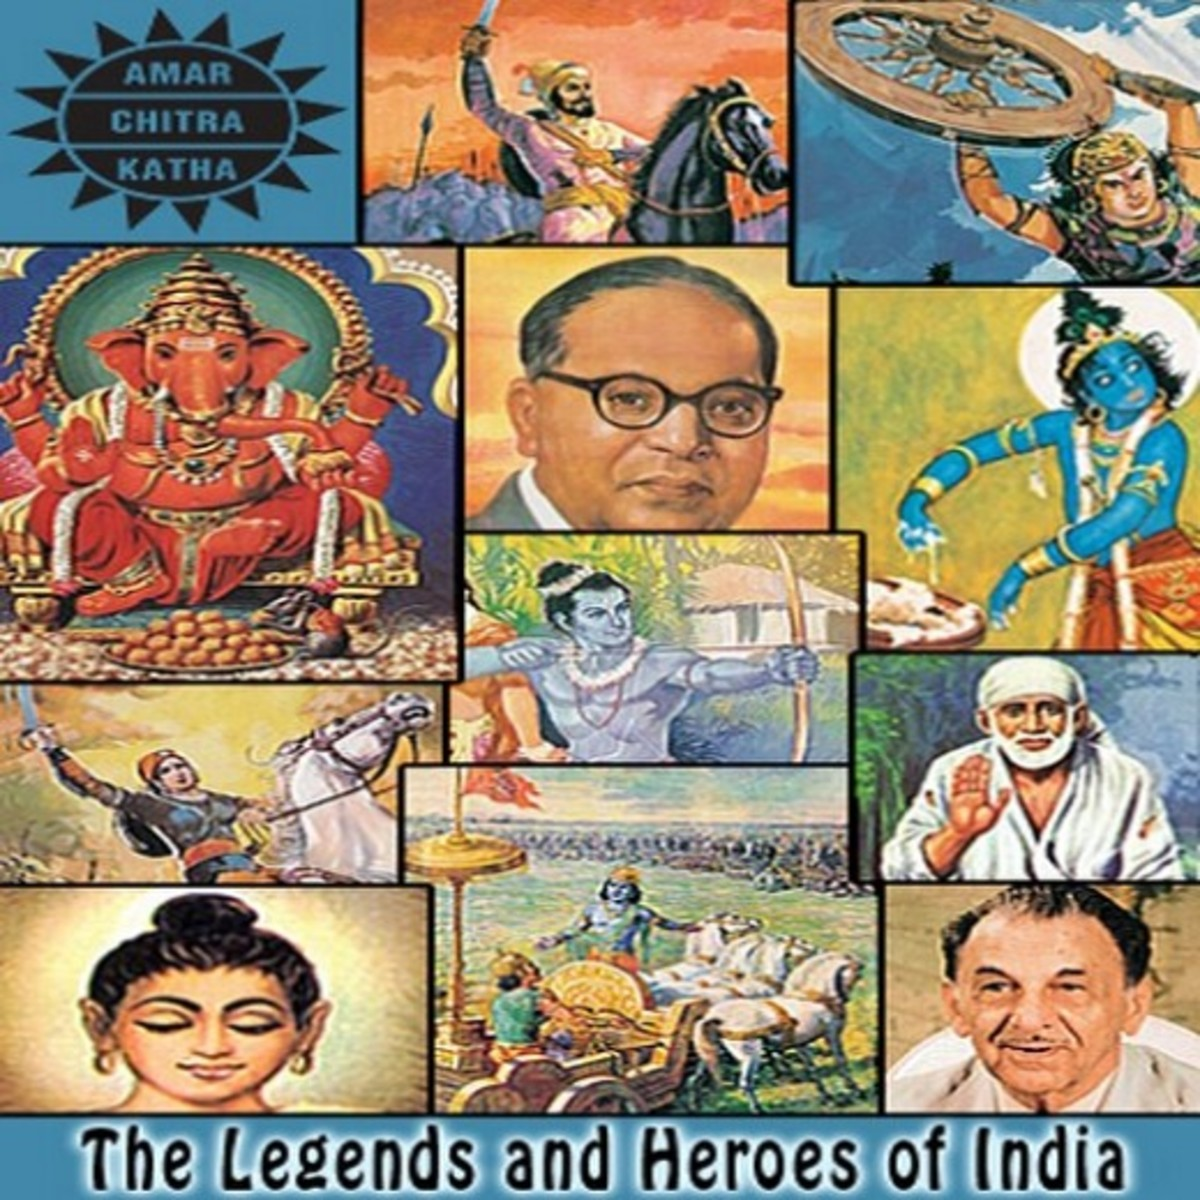 India's Comics About Hindu Mythology and History in English Language-Amar Chitra Katha(meaning Immortal Picture Stories)